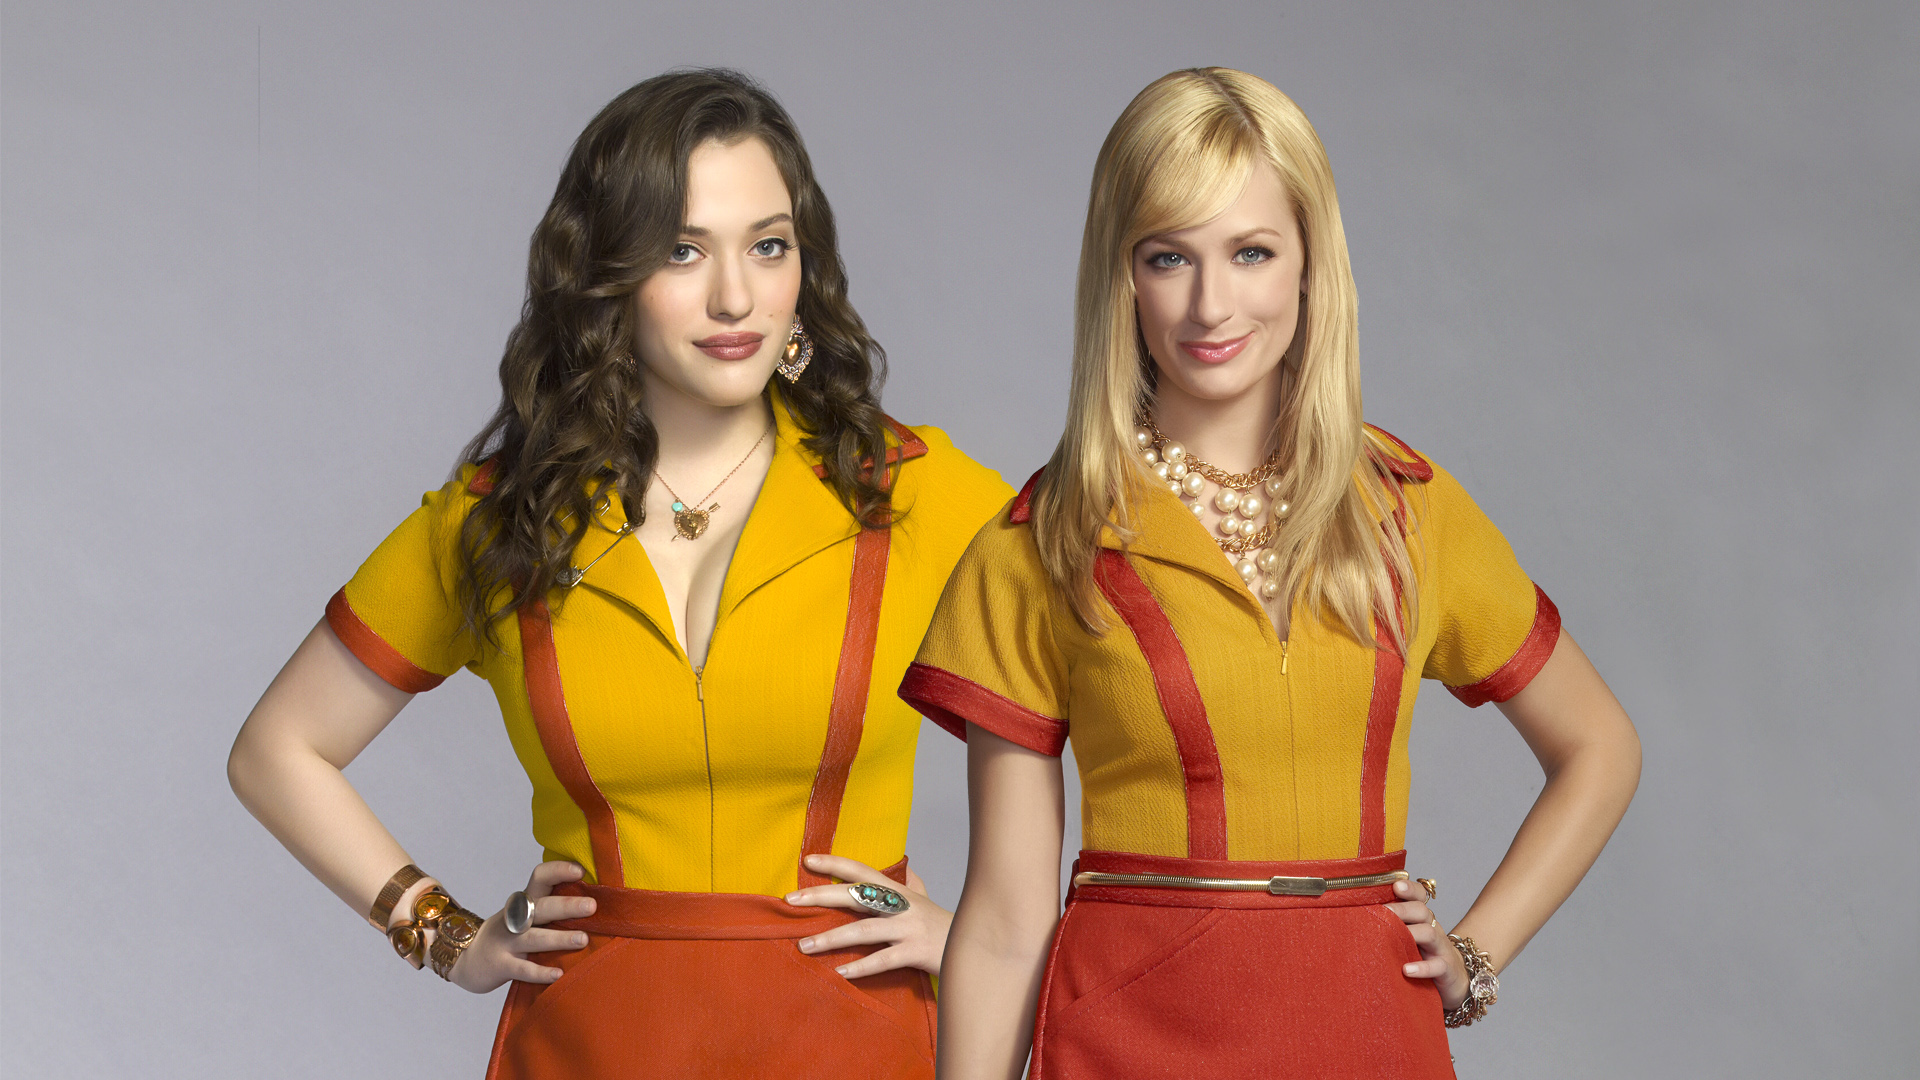 2 Broke Girls Images HD Wallpaper And Background Photos